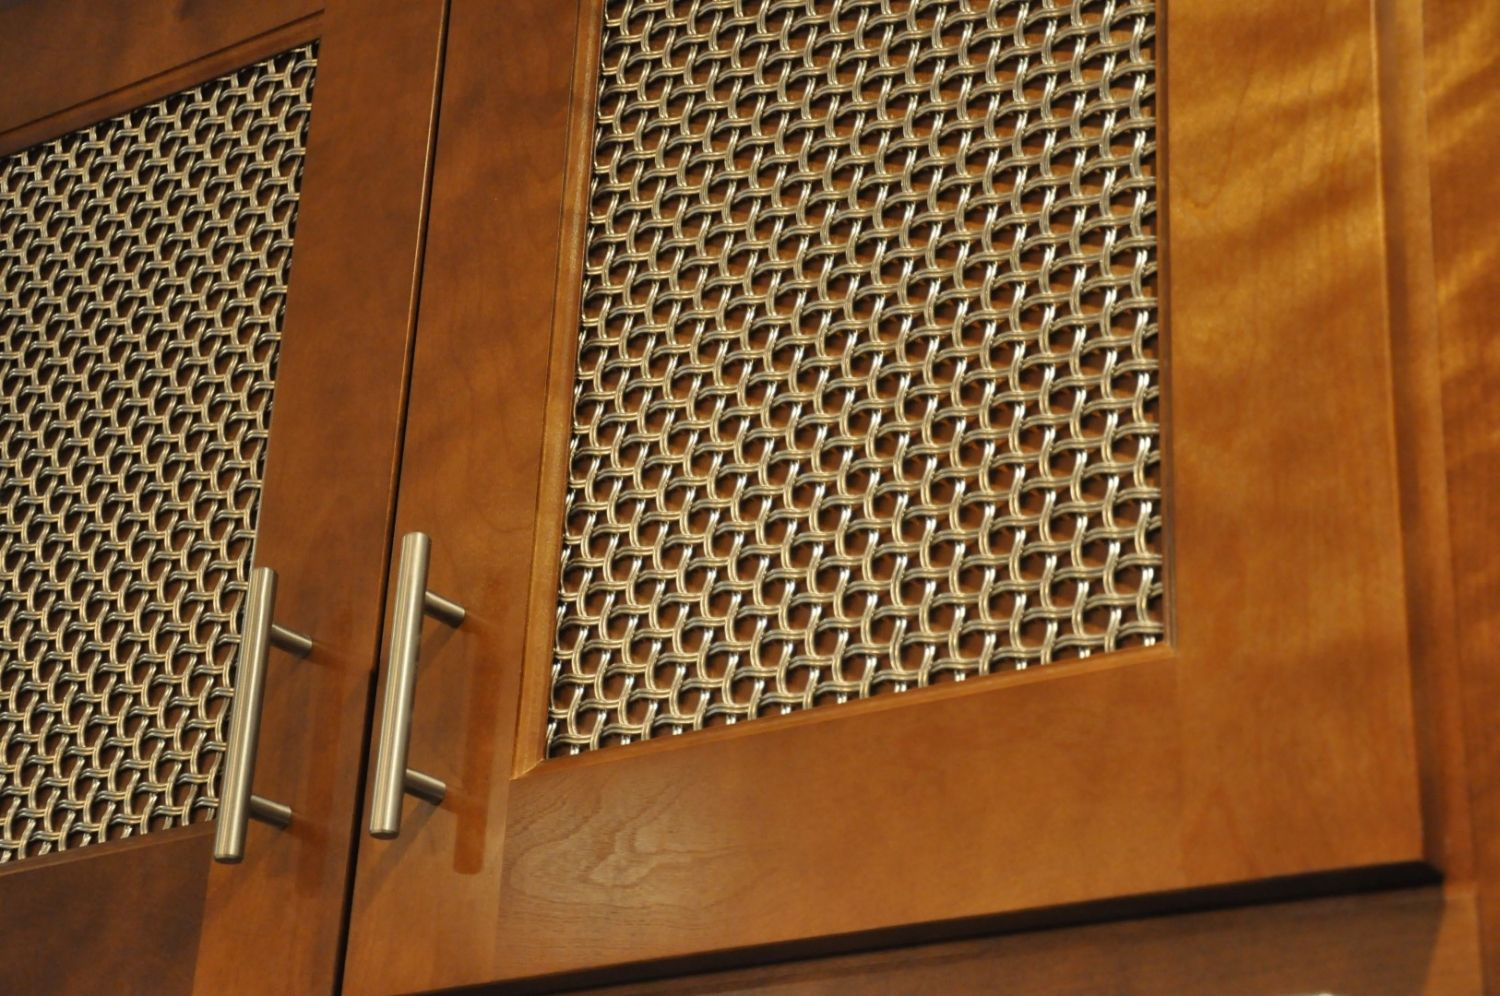 Nice Woven Wire Mesh Over Wood Inserts Conceals The Items Within The Cabinets  For A Neat Appearance